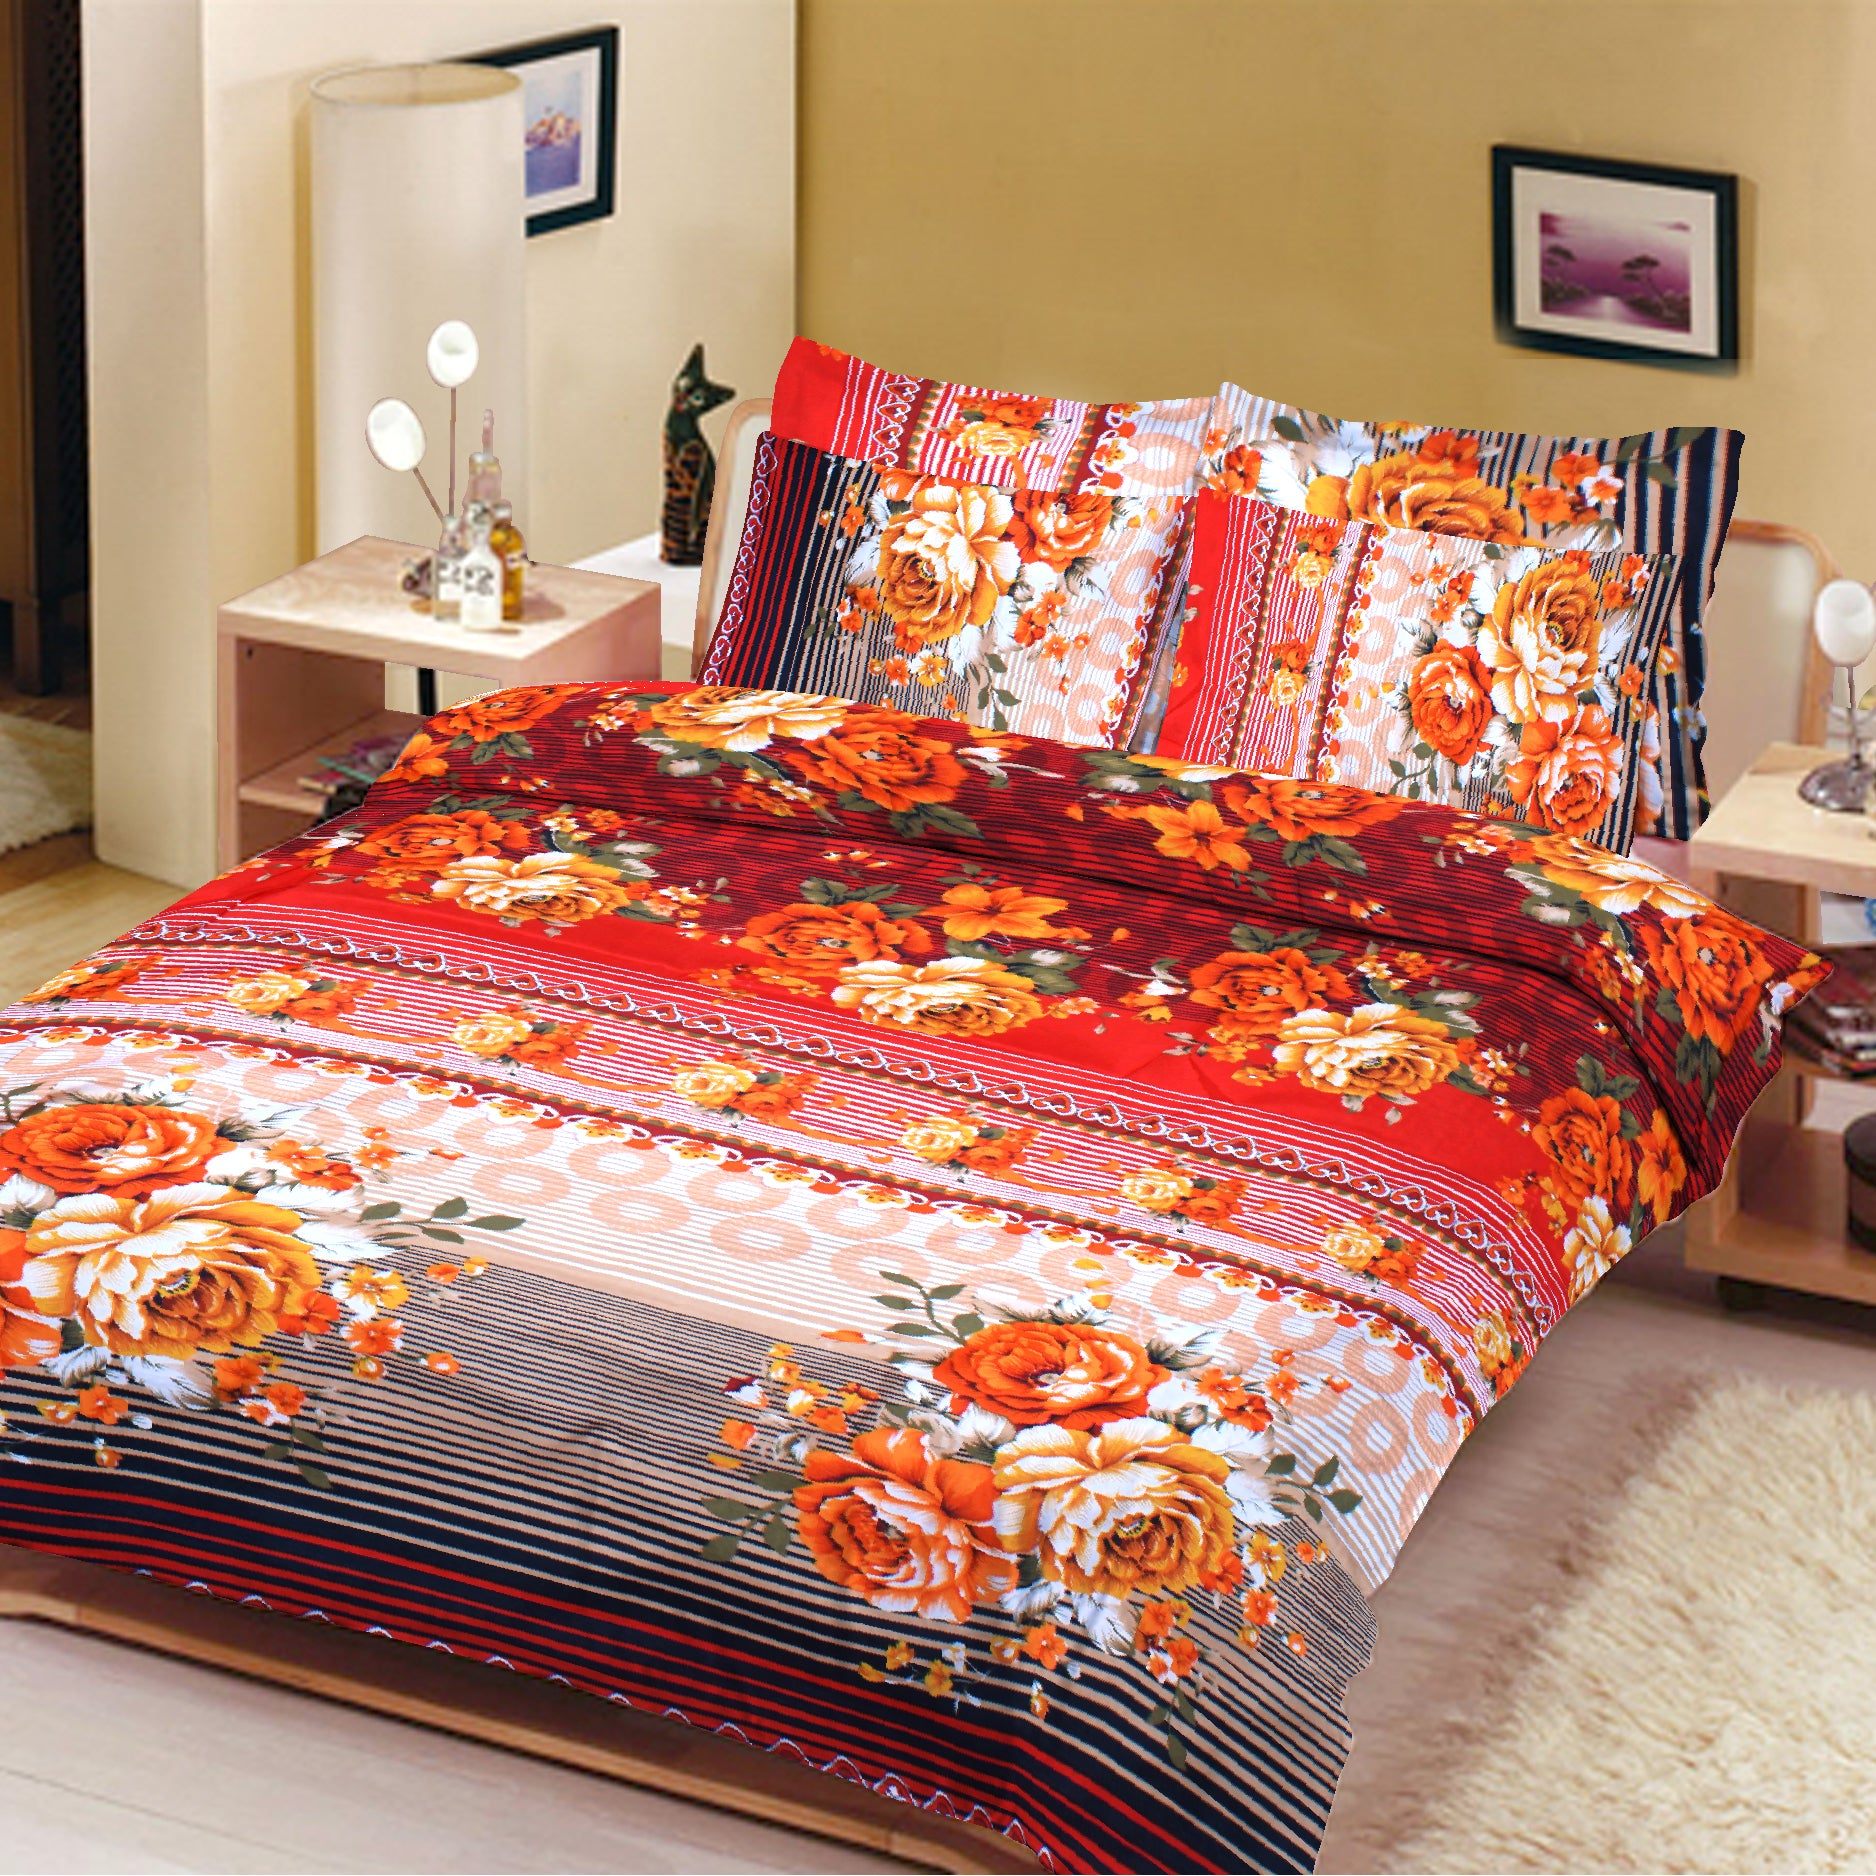 5D Oker's Island 100% Cotton Sutton Printed Double Bed Sheet & Pillow Set-NA6101